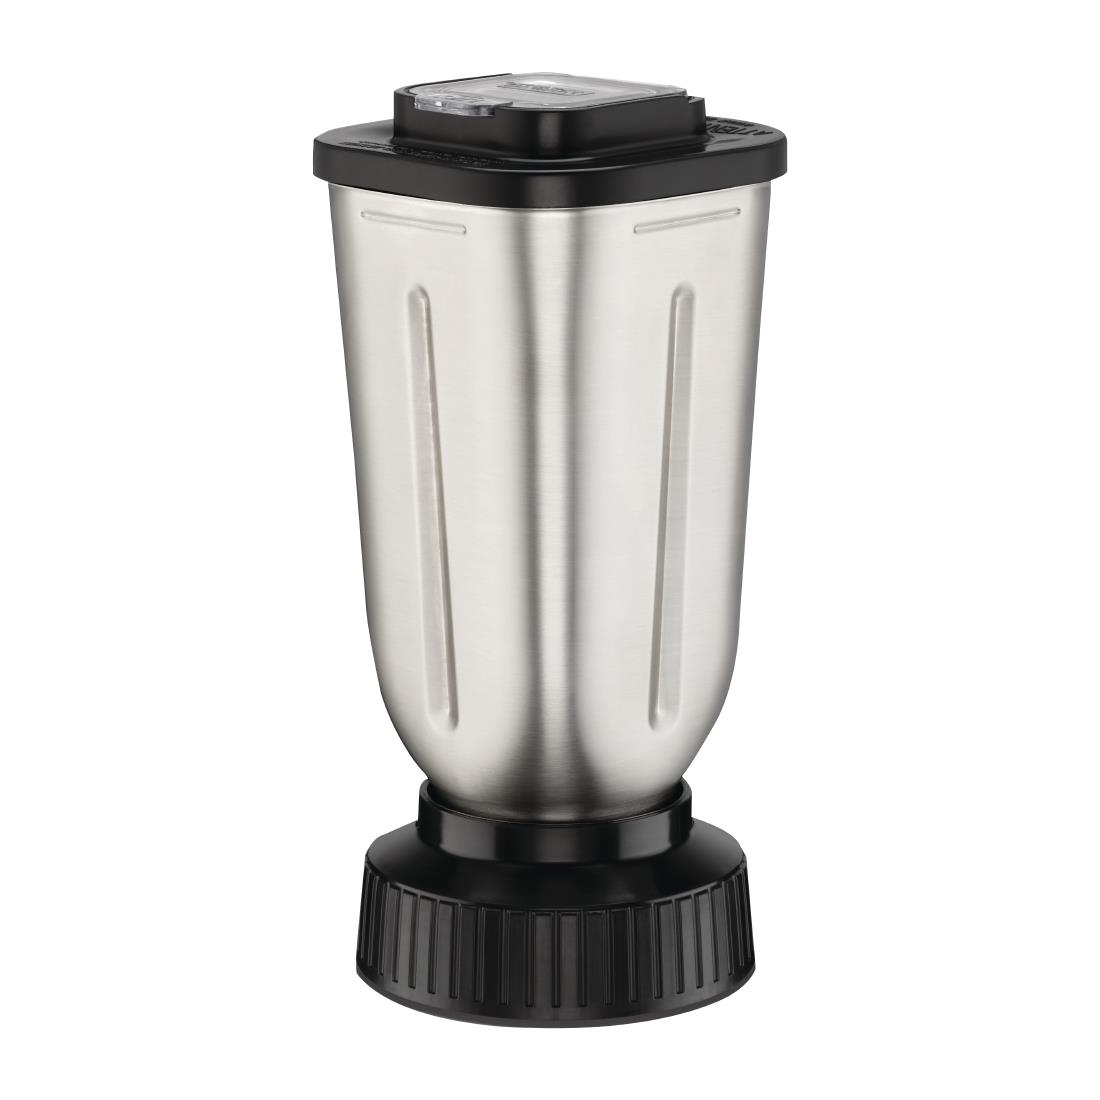 Waring 1Ltr Stainless Steel Blender Jar for BB255K Series